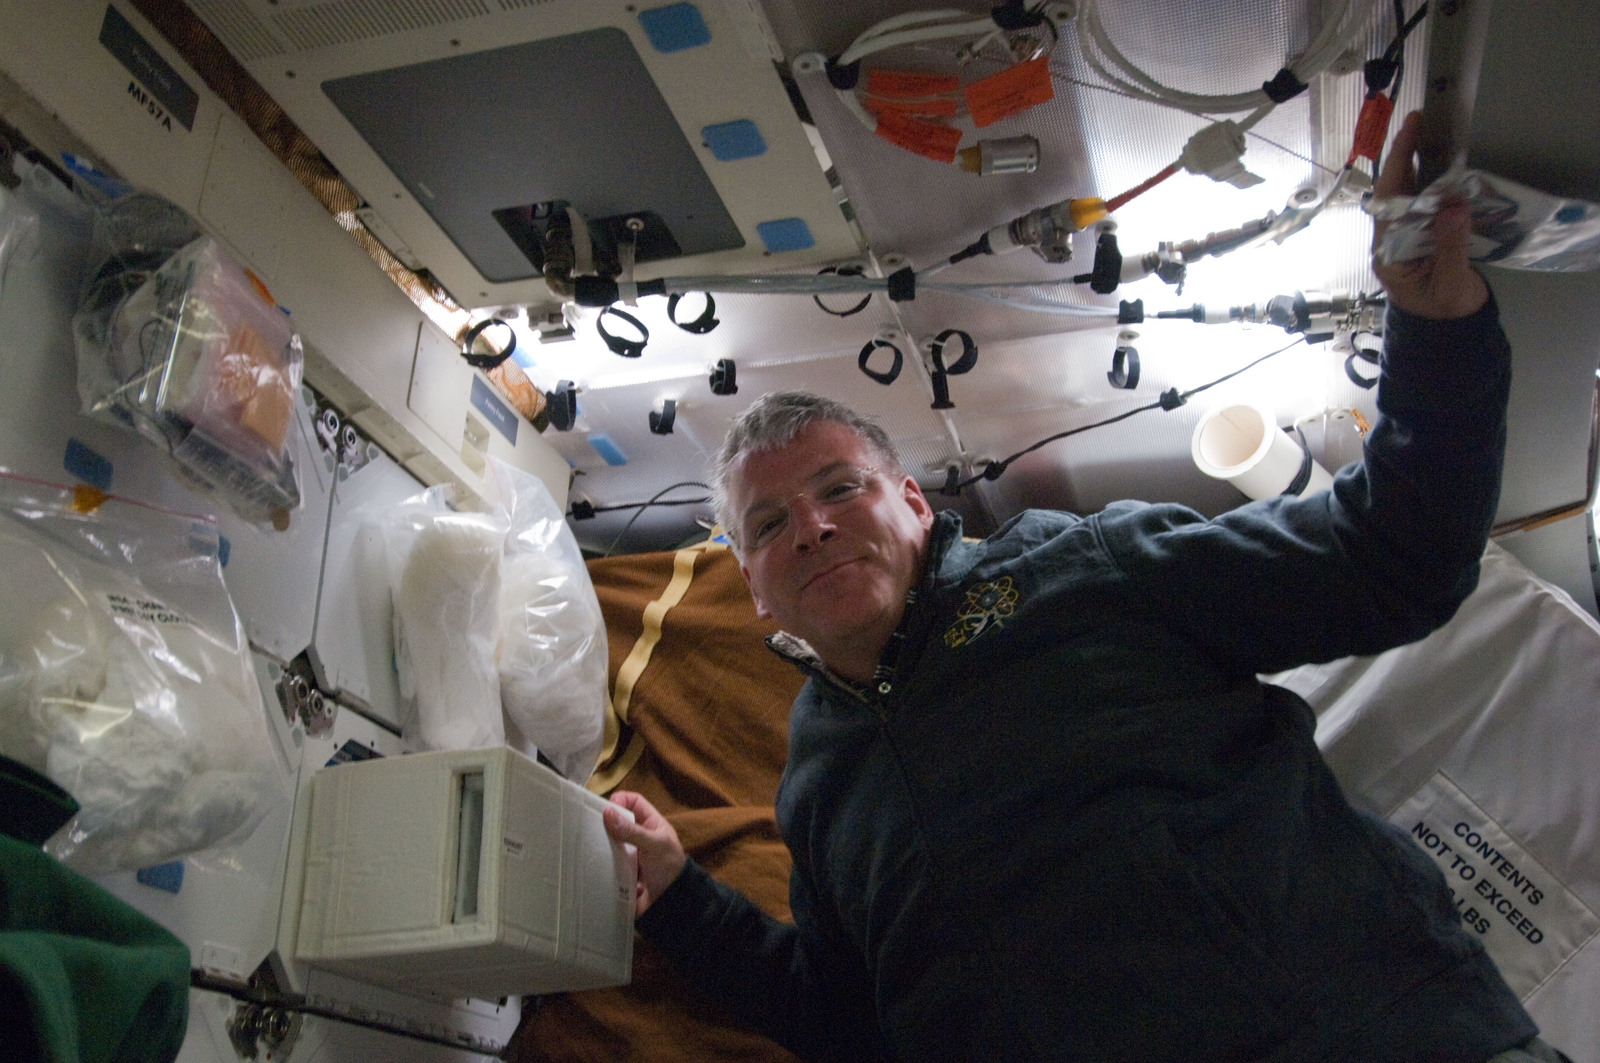 S134E005329 - STS-134 - View of STS-134 Pilot Johnson posing for a photo